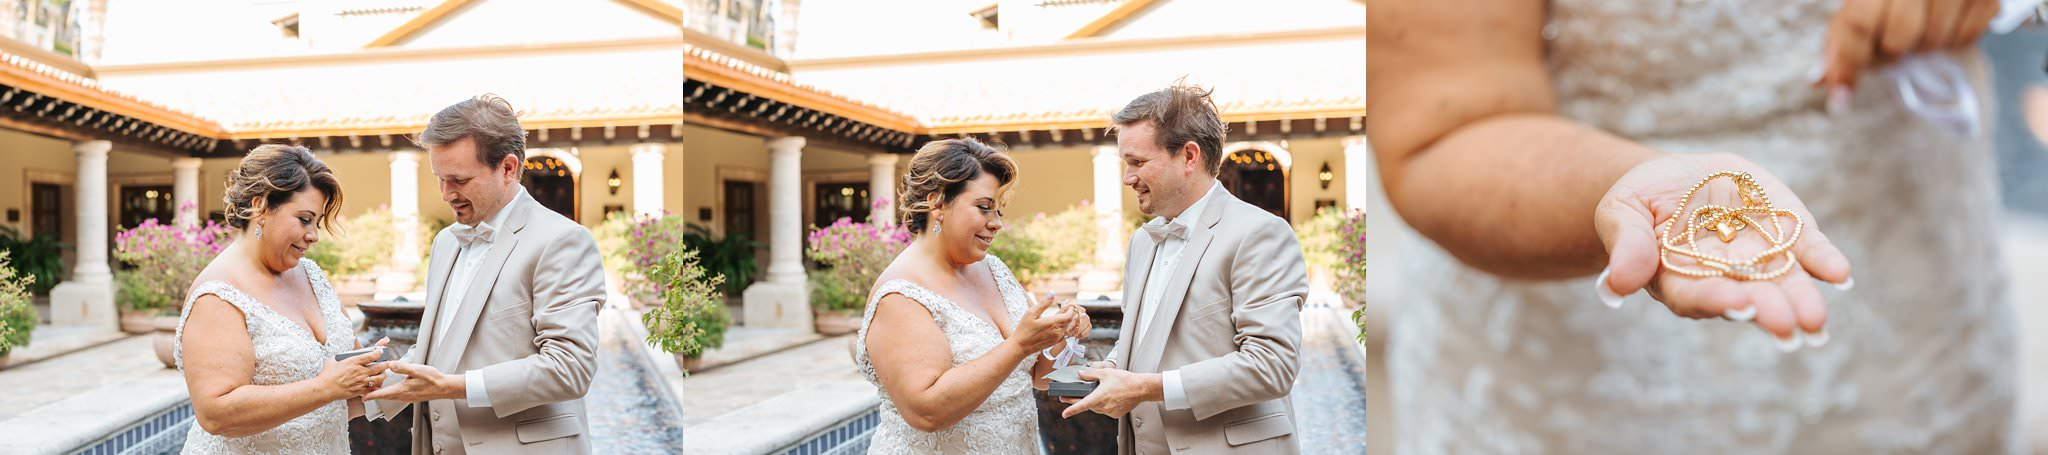 Bride opening gift from groom - Cabo Destination Wedding - https://brittneyhannonphotography.com